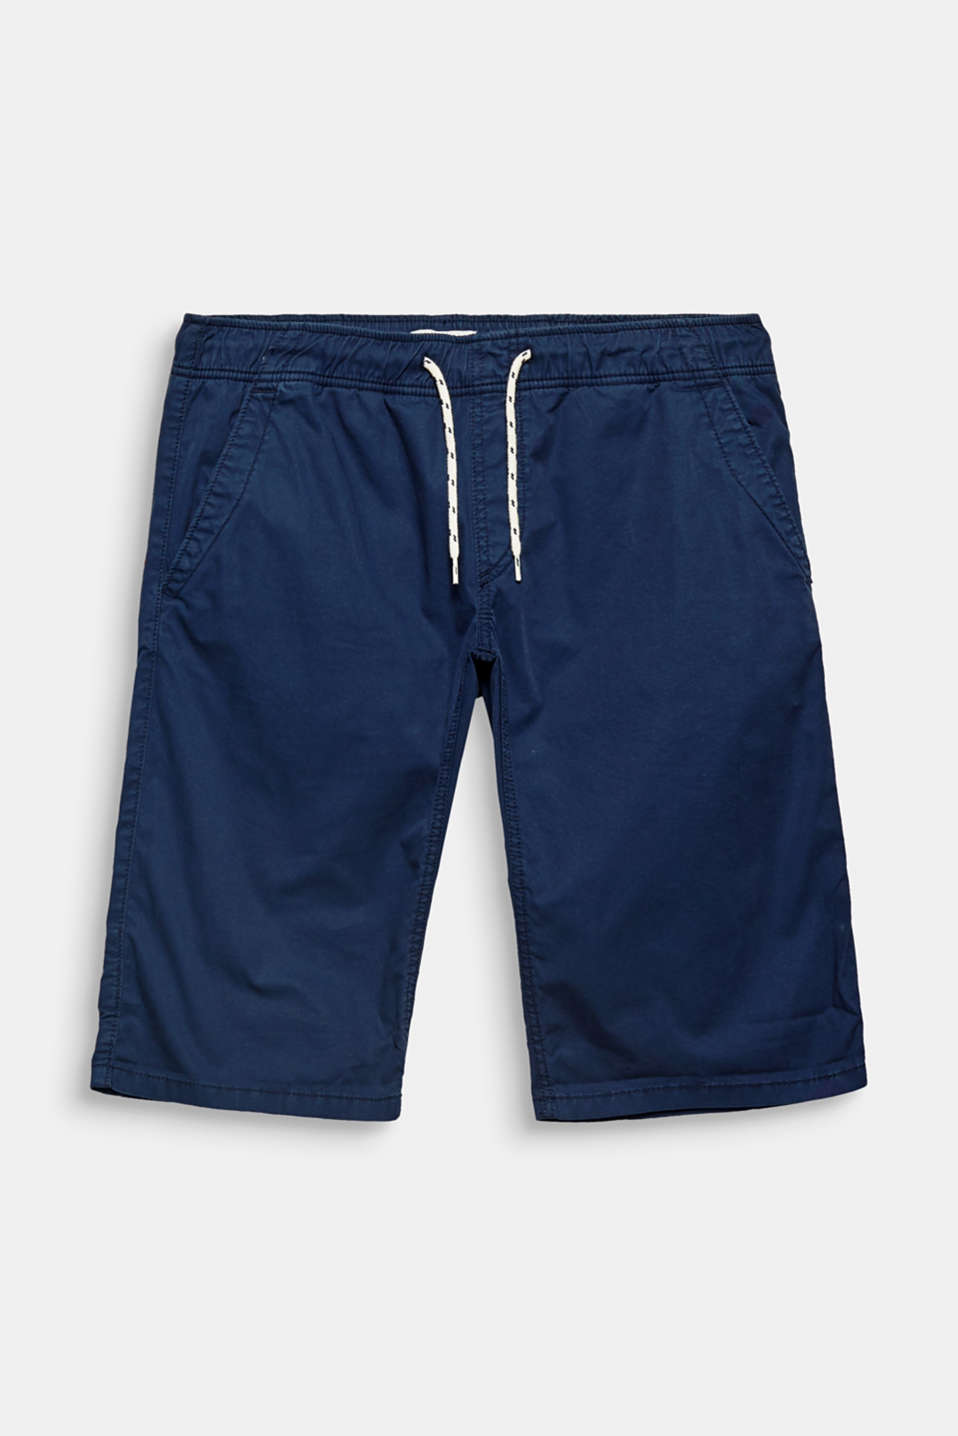 Shorts made of pure cotton in a slim fit with a relaxed drawstring waistband.